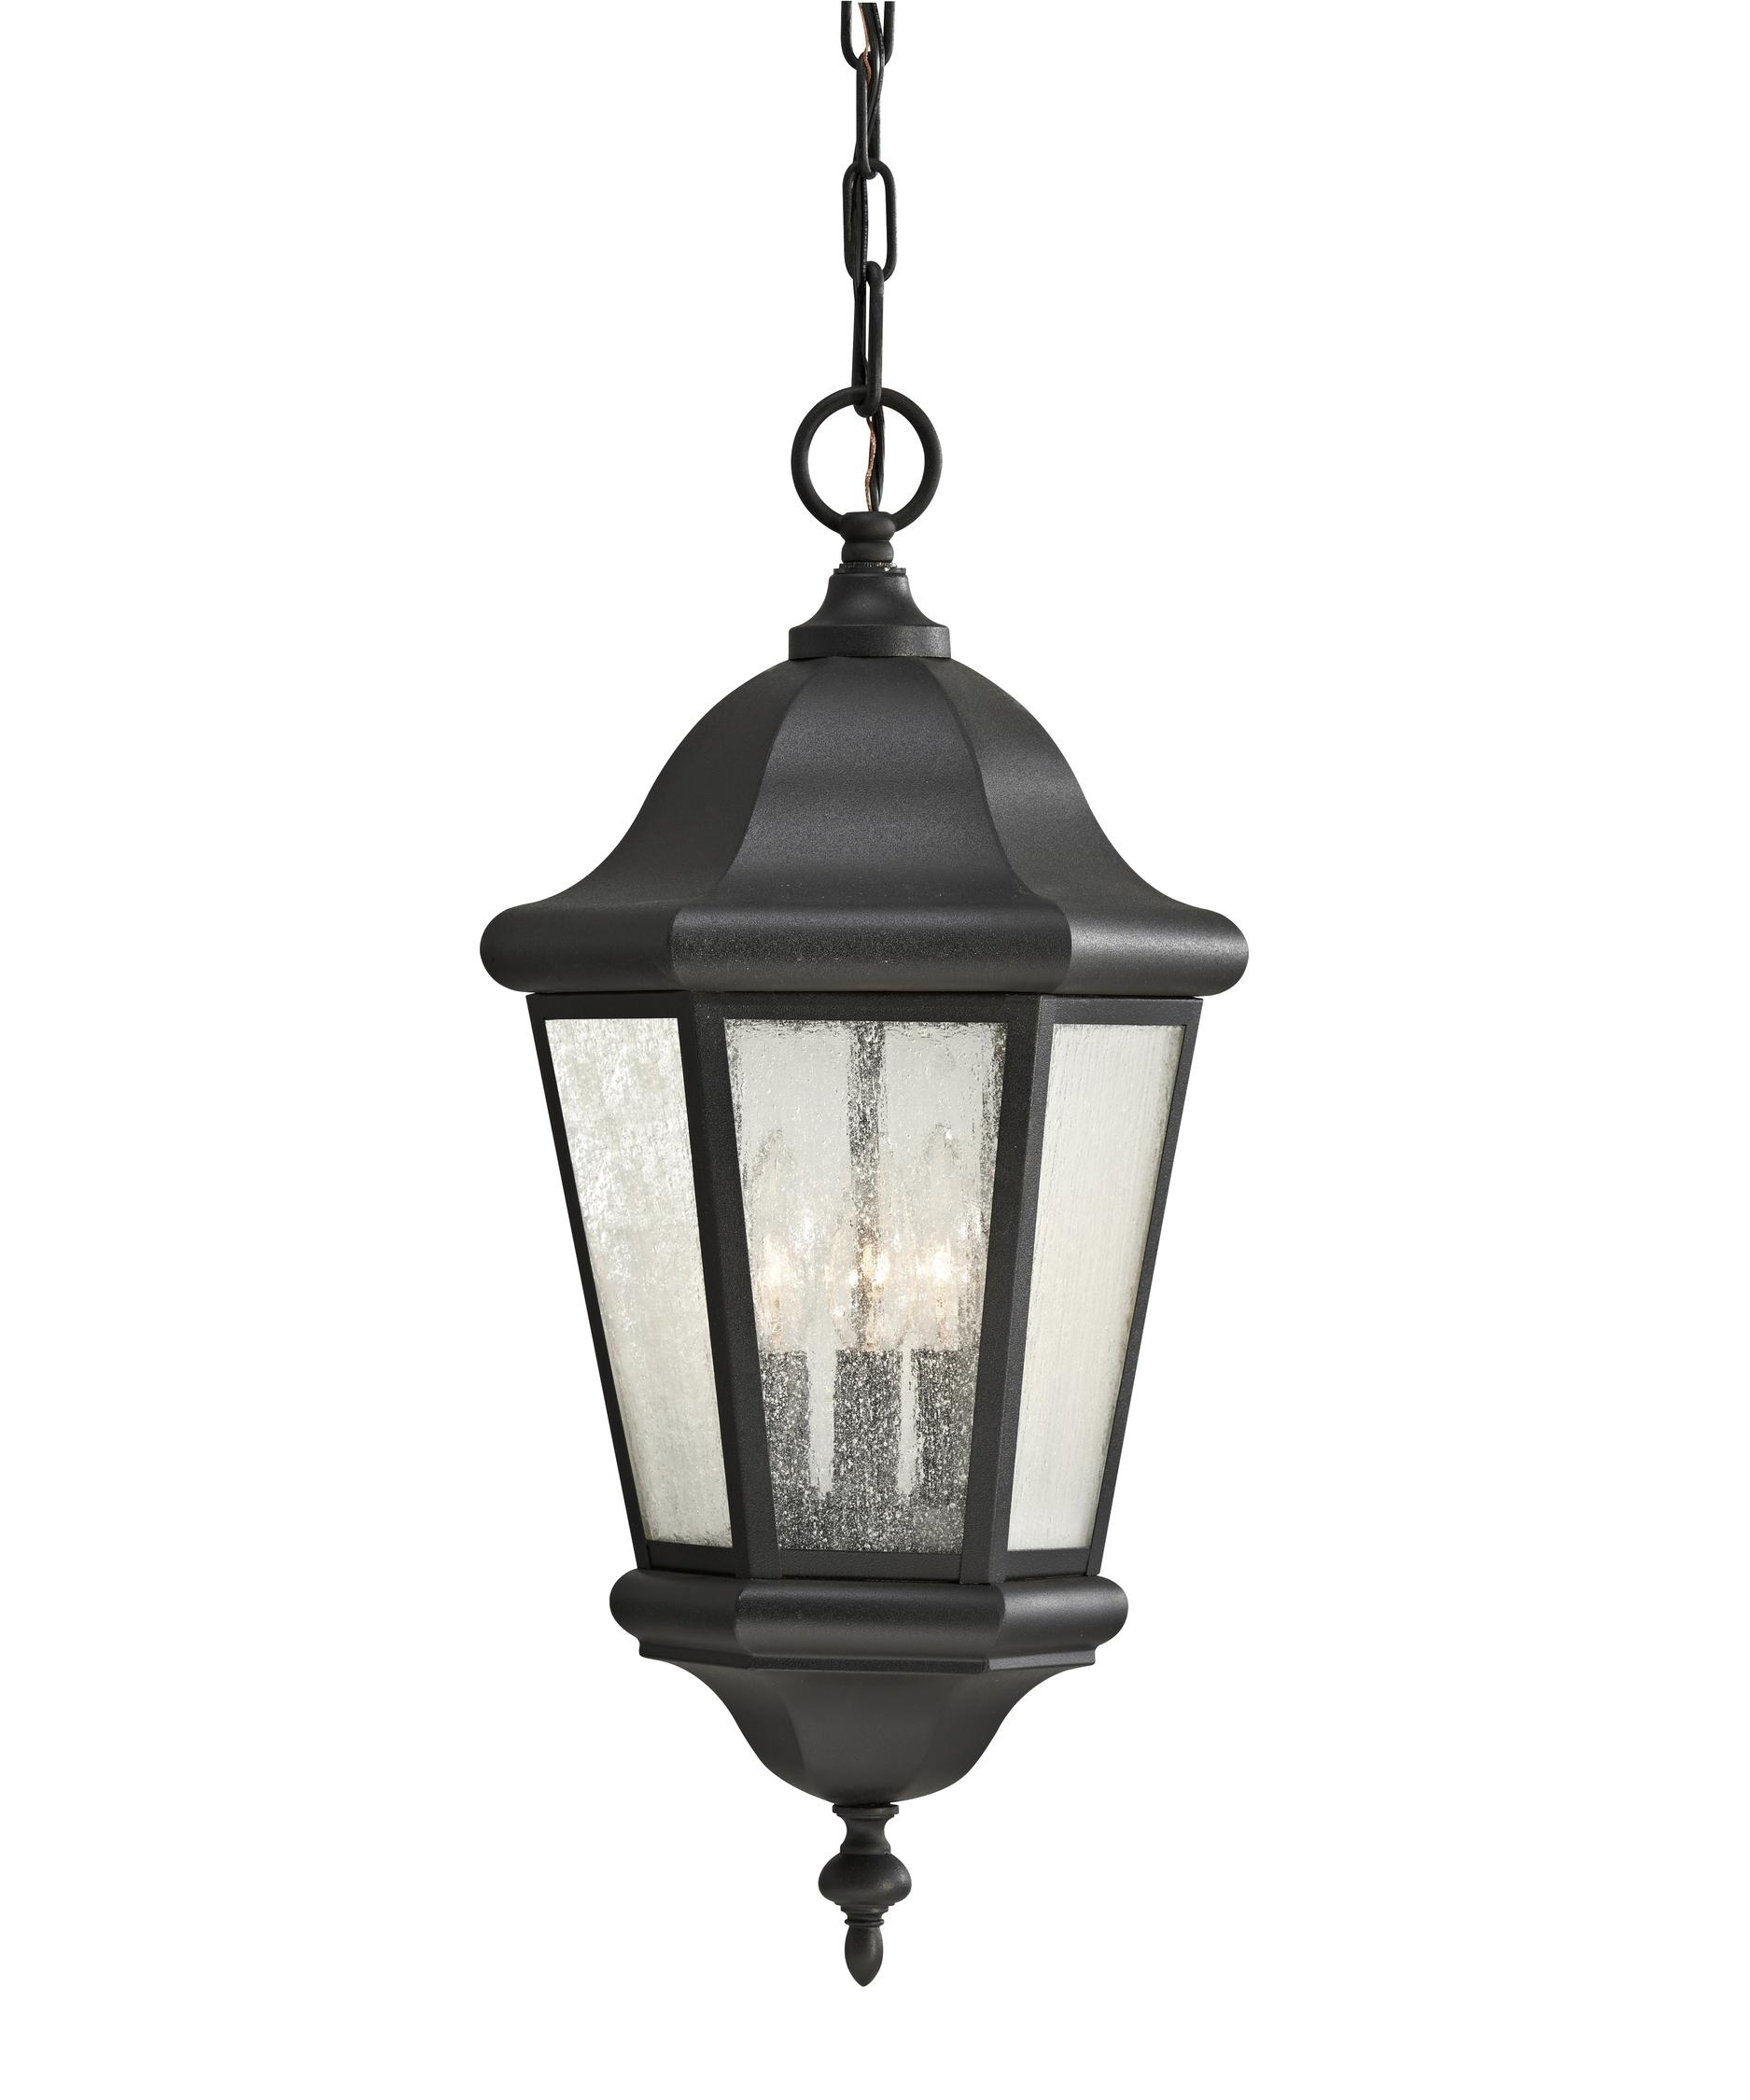 Outdoor Hanging Glass Lanterns For Well Known Murray Feiss Ol5911 Martinsville 10 Inch Wide 3 Light Outdoor (View 17 of 20)